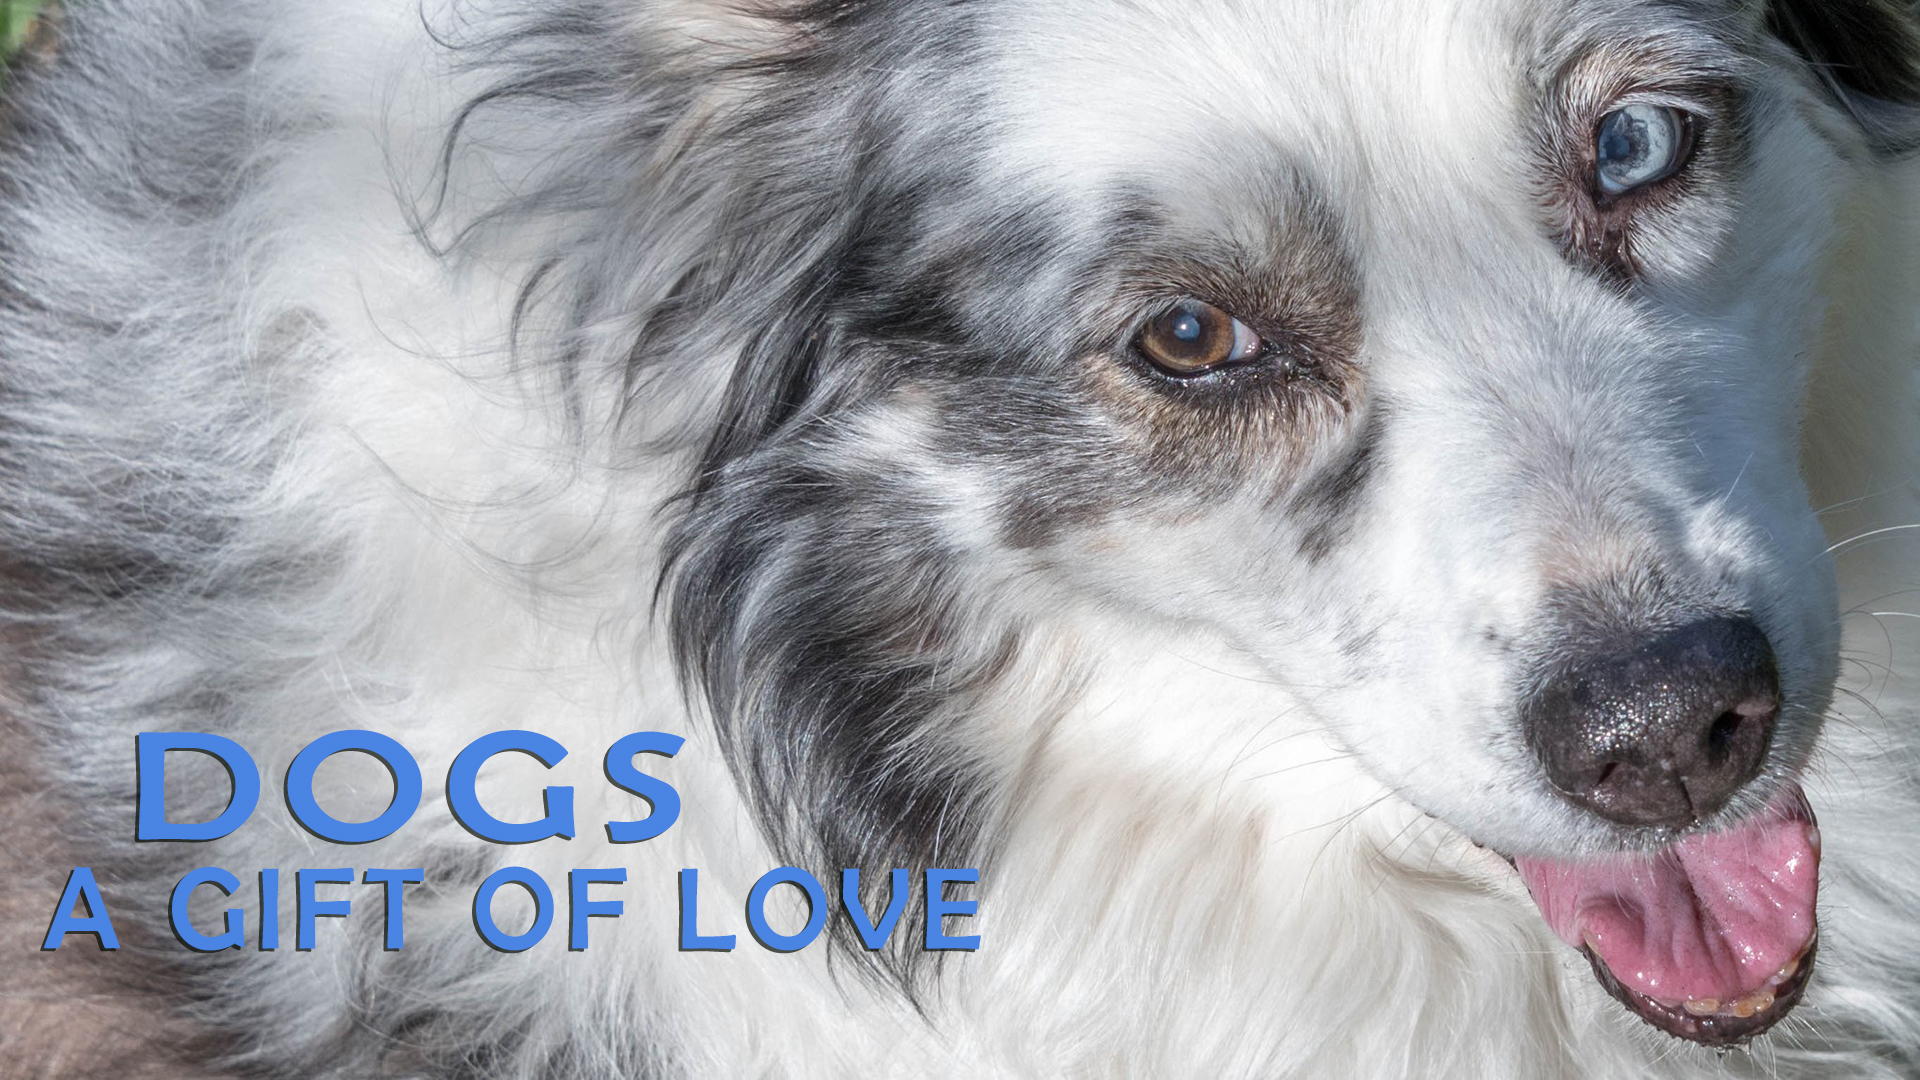 Dogs: A Gift of Love